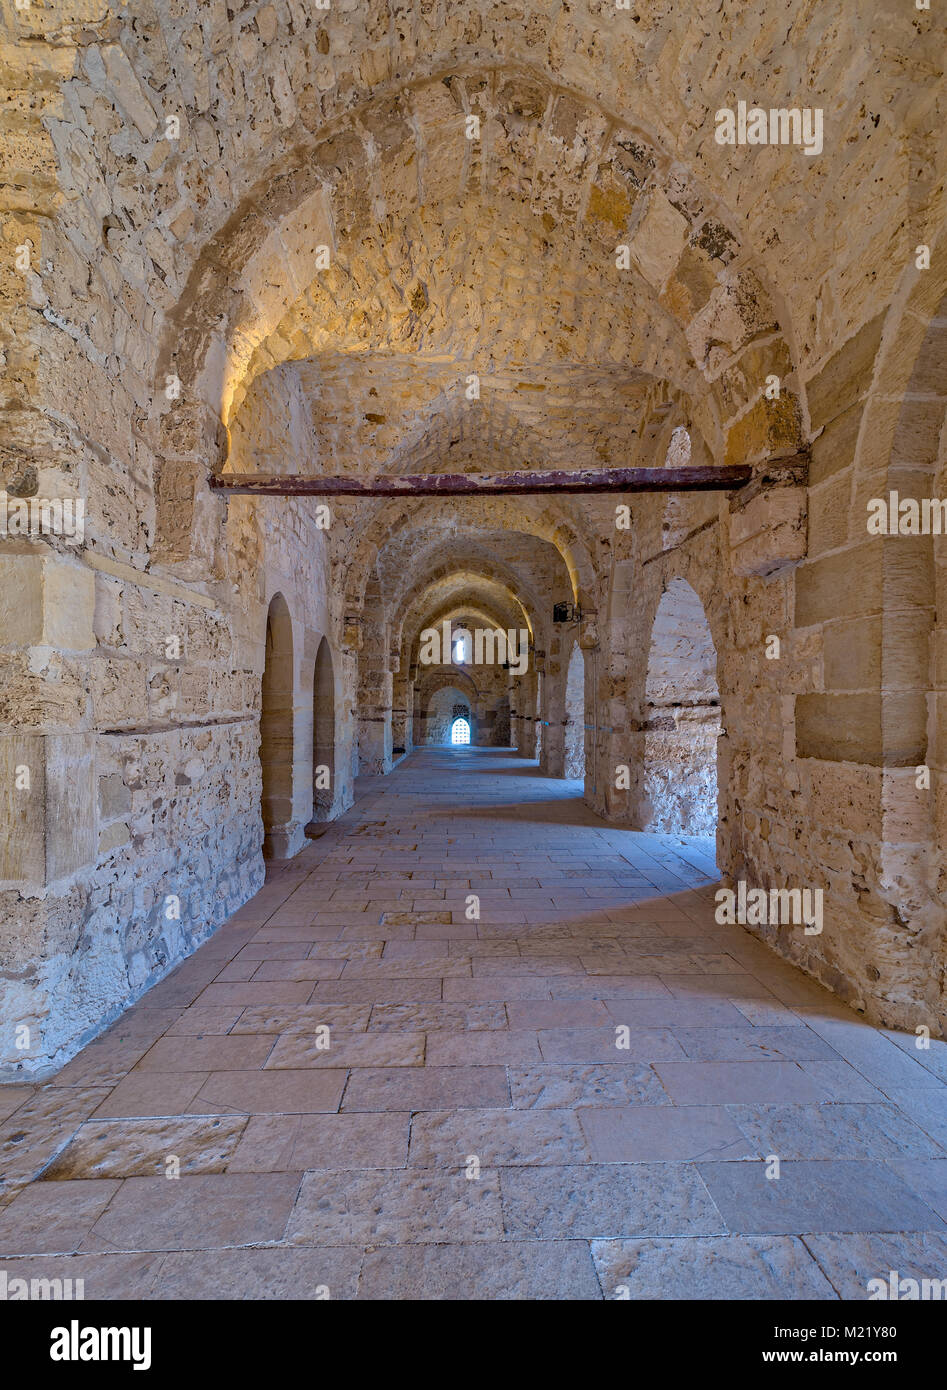 Passage at the Citadel of Qaitbay, an old historical castle in Alexandria, Egypt, a fifteen century defensive fortress - Stock Image